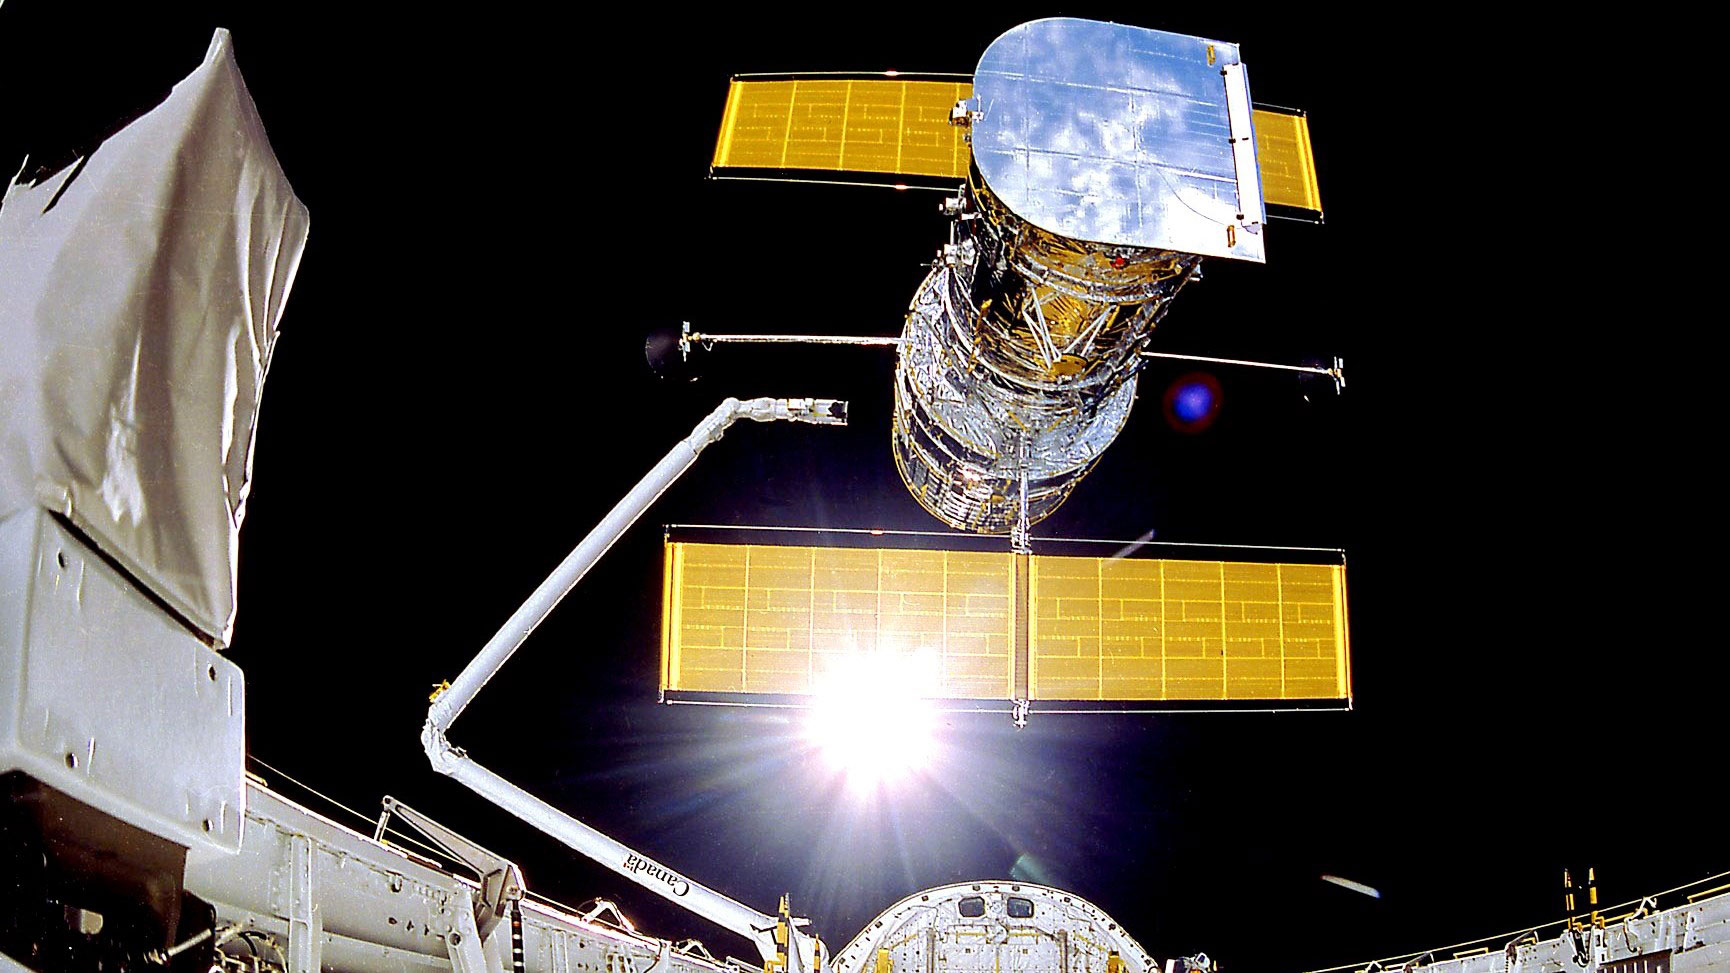 Universe, we have a problem: NASA's investigating an outage on the Hubble Space Telescope